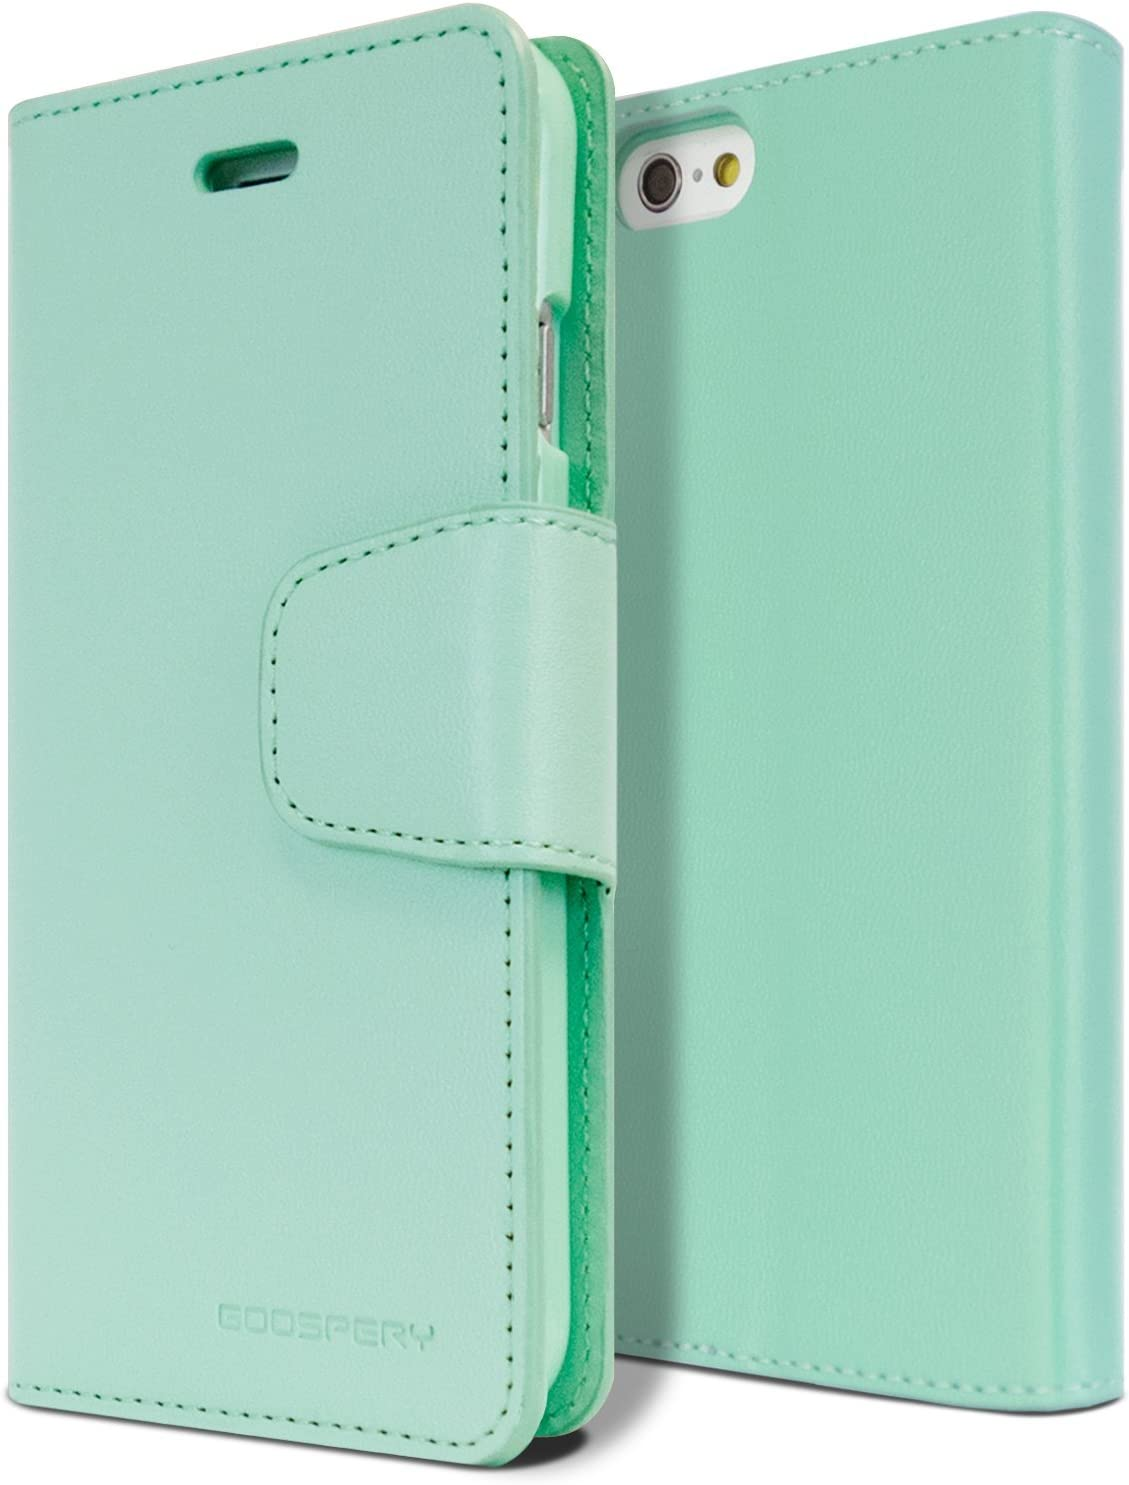 Goospery Sonata Wallet for Apple iPhone 6S Plus Case (2015) iPhone 6 Plus Case (2014) Leather Stand Flip Cover (Mint) IP6P-SON-MNT